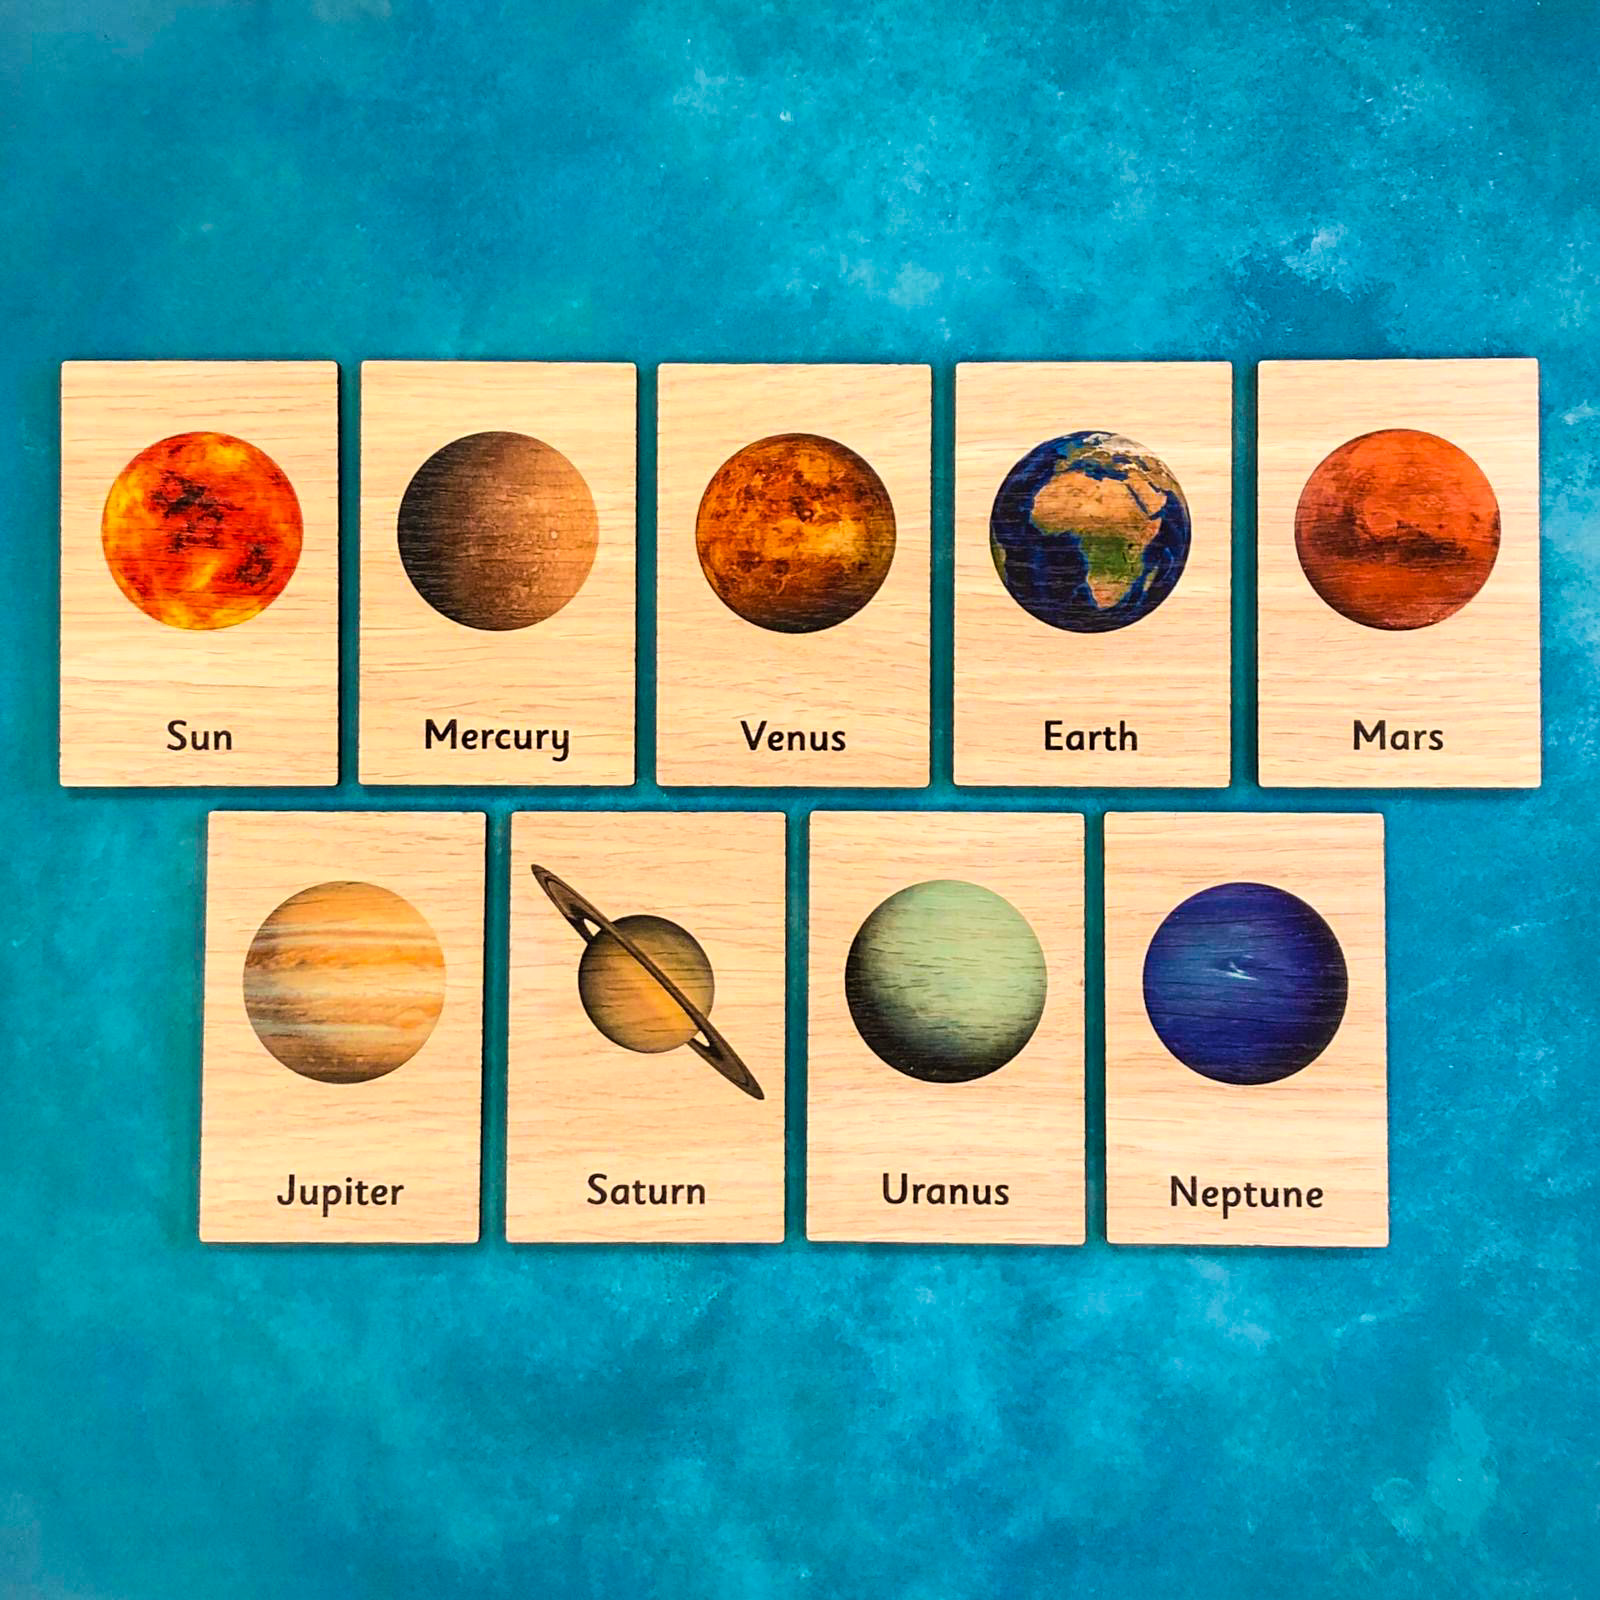 Montessori Inspired Wooden Learning Tiles - Planets of the Solar System